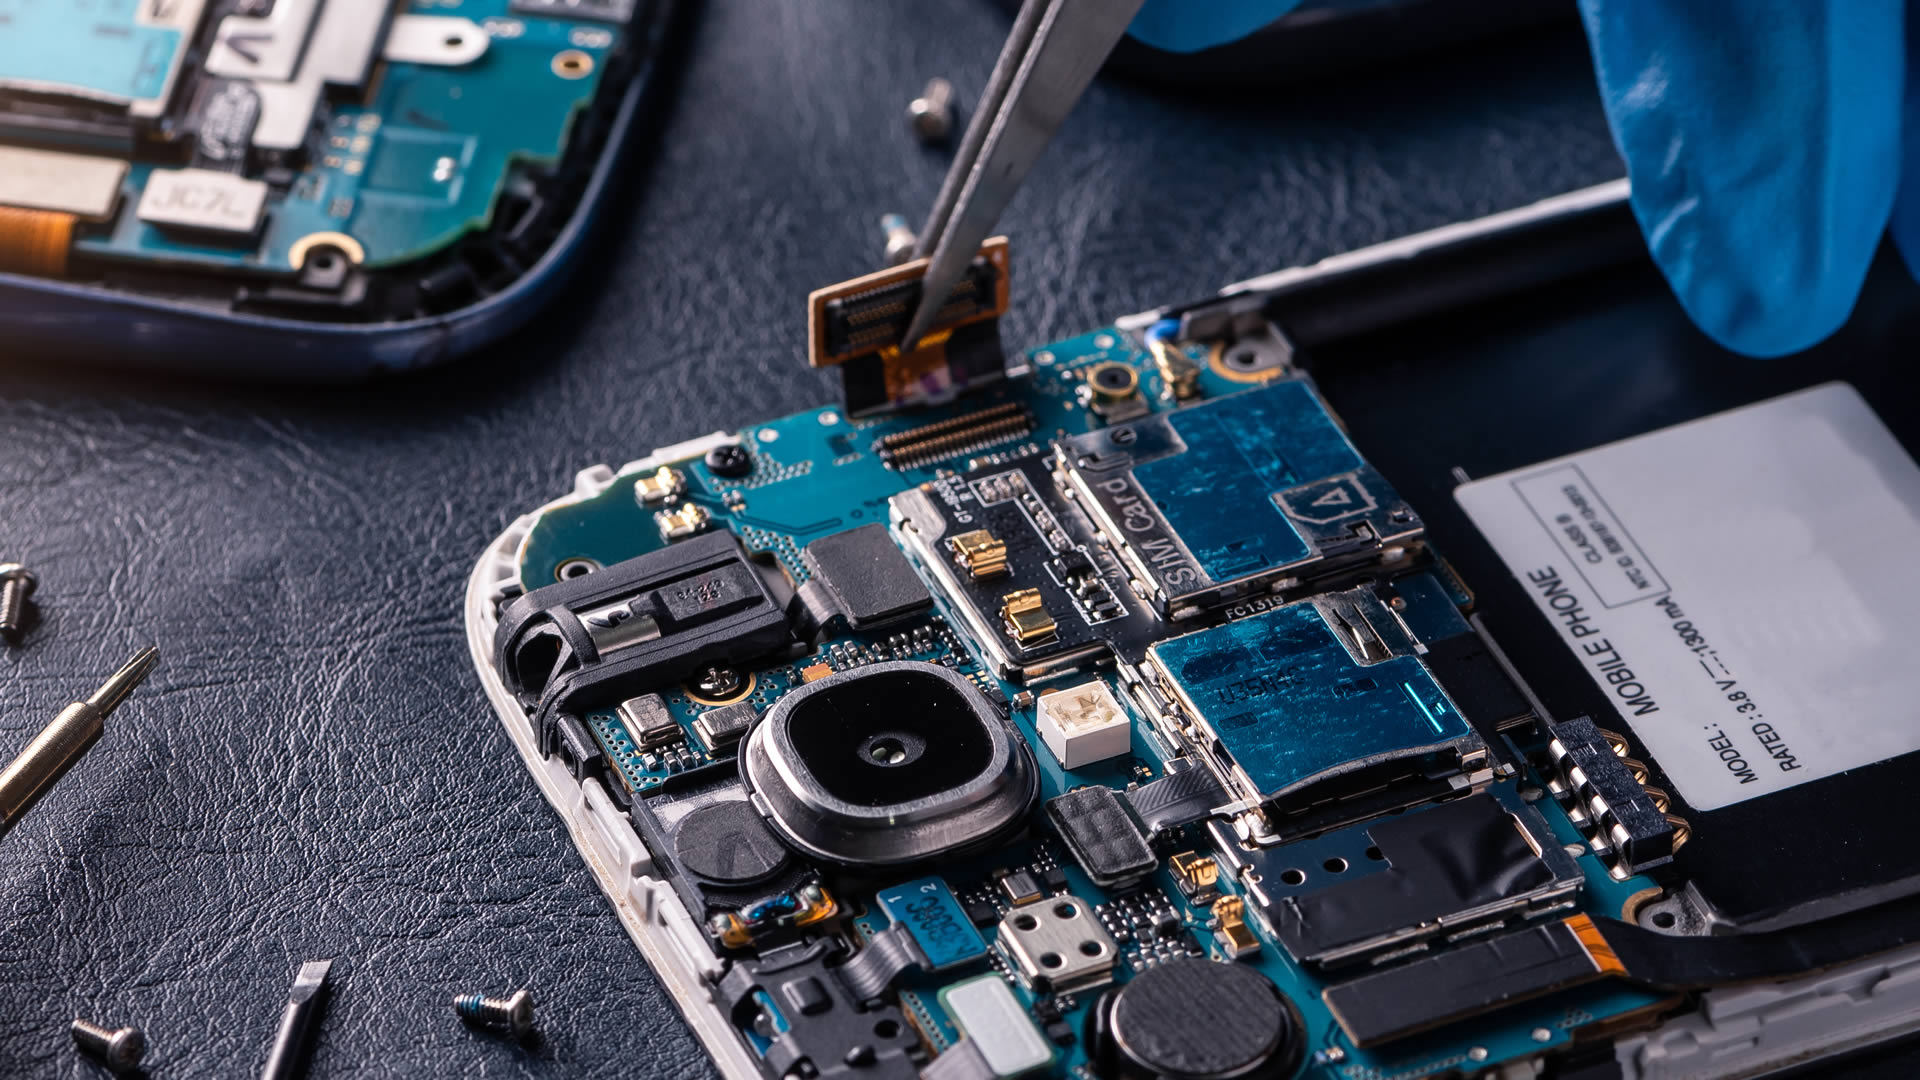 iPhone Samsung and Tablet Repairs in Saint Asaph